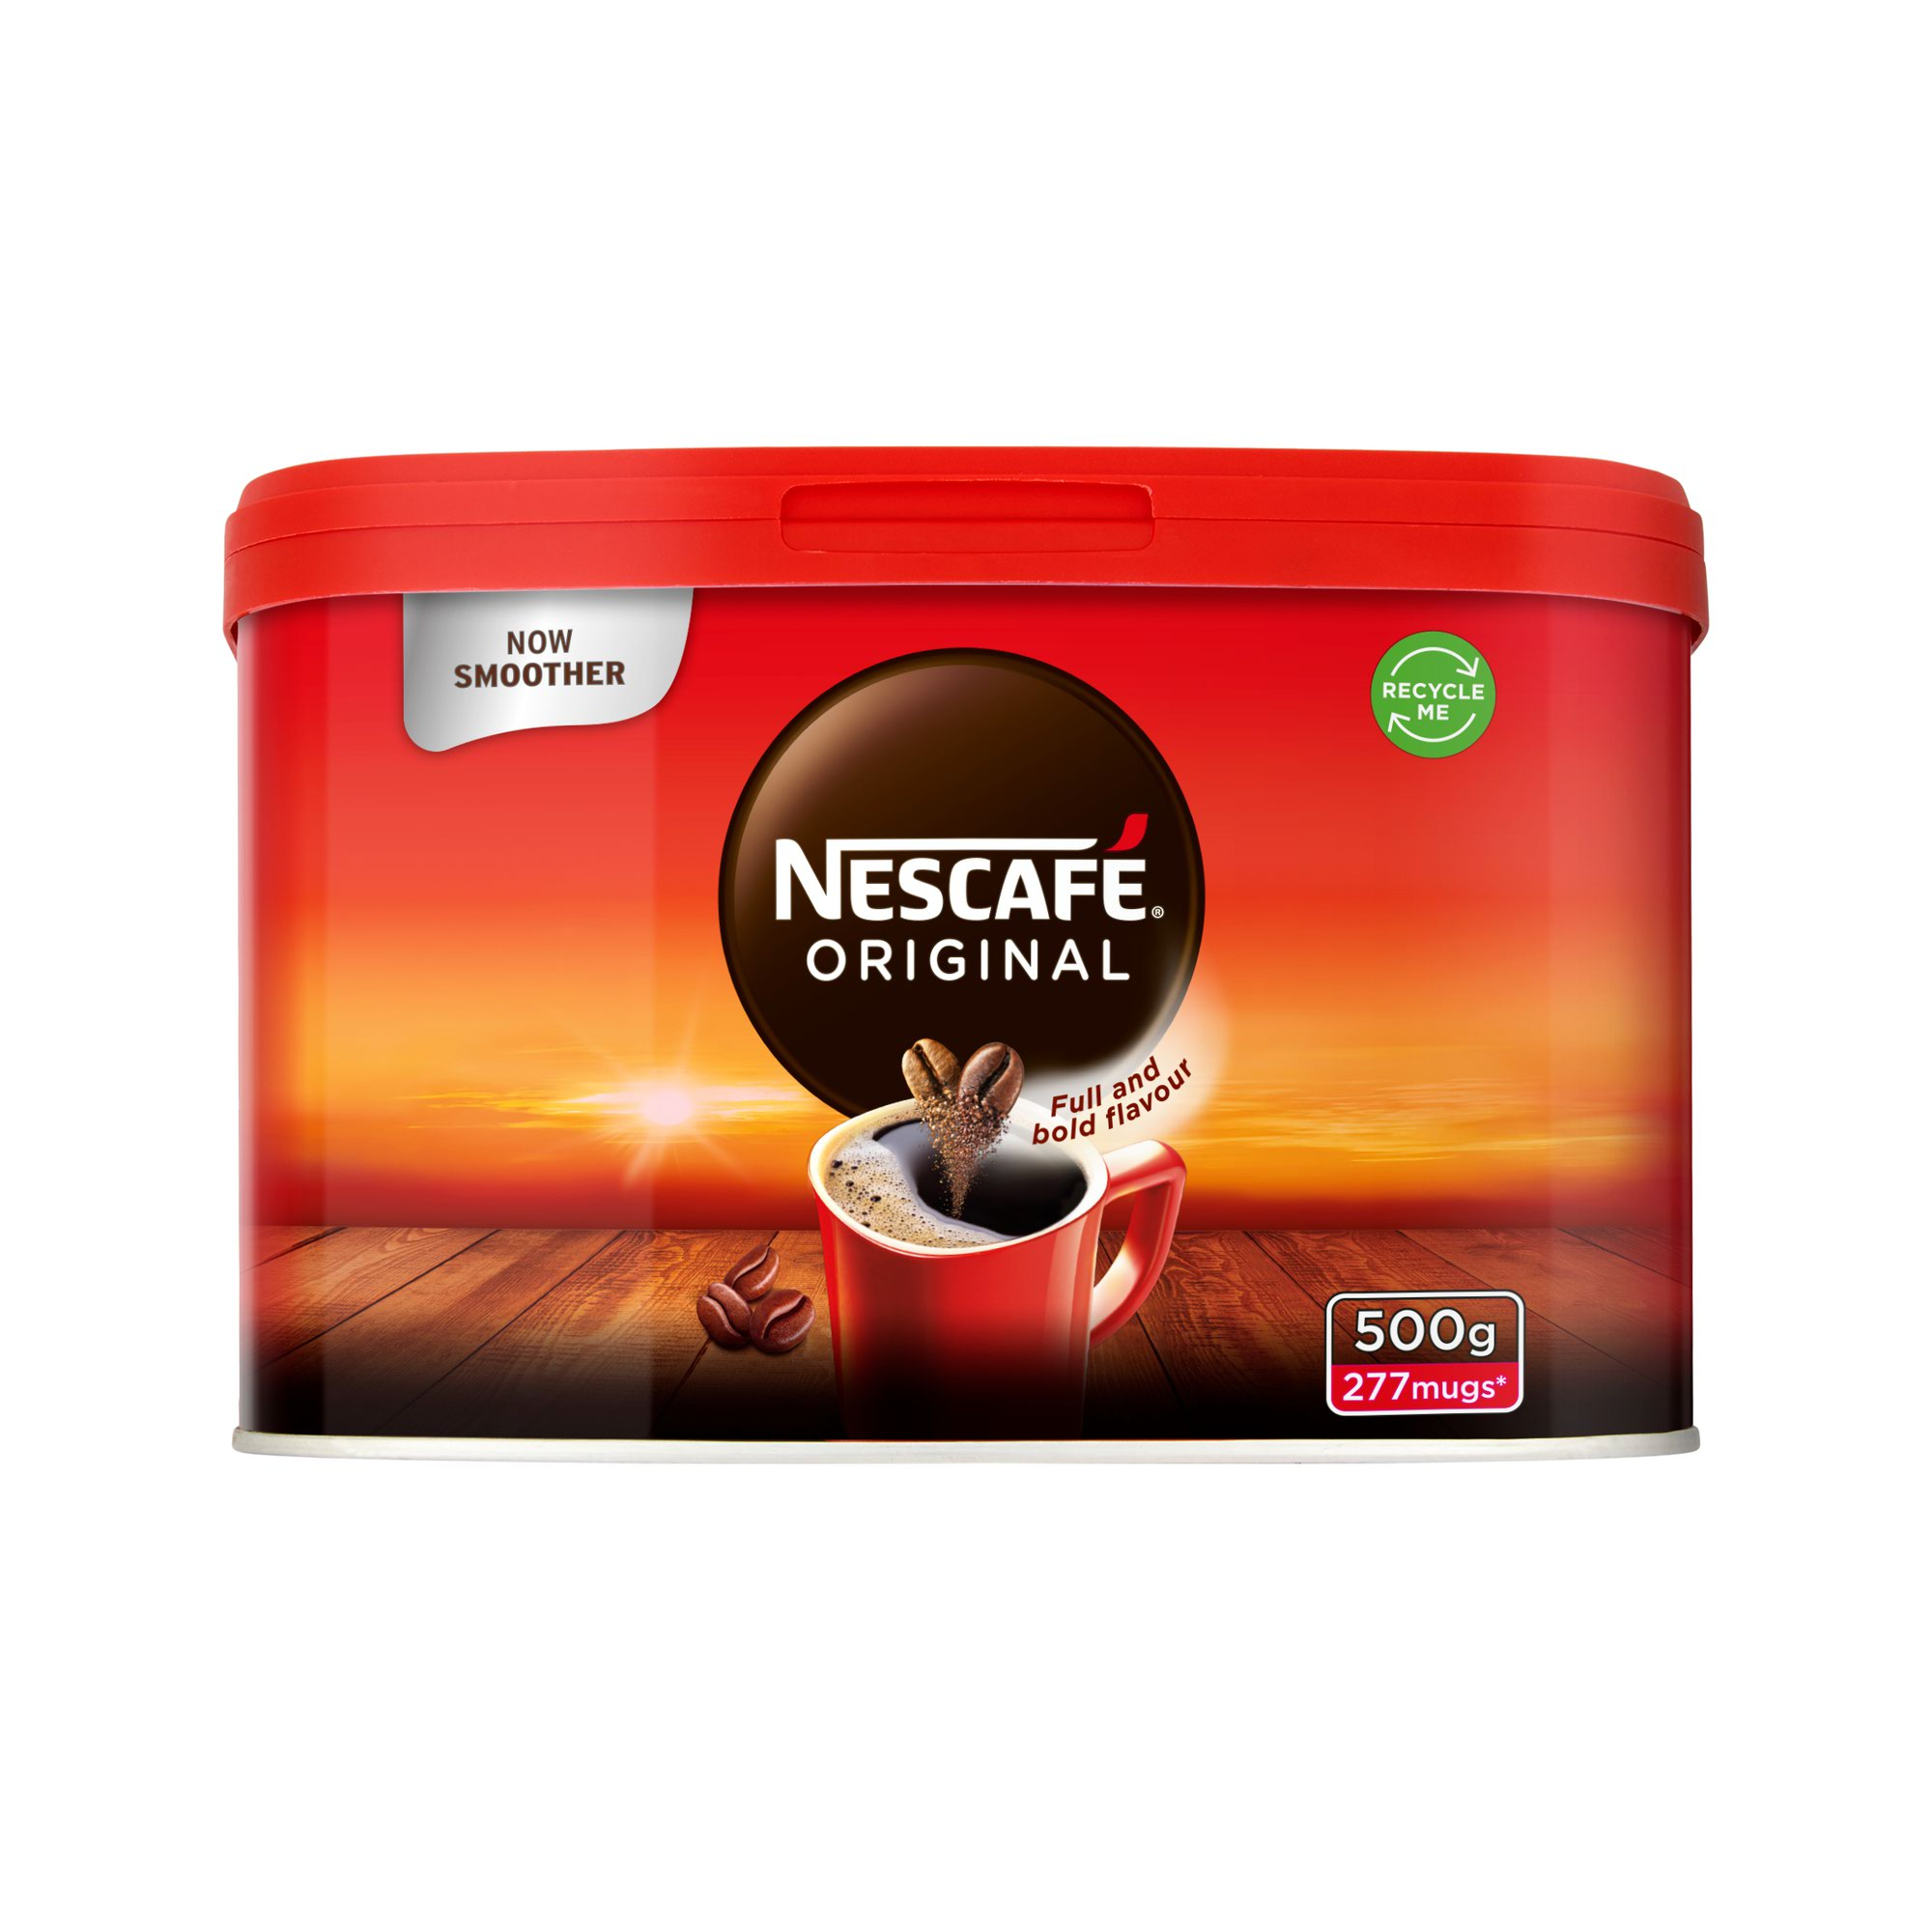 NESCAFE Original Coffee Granules 500g